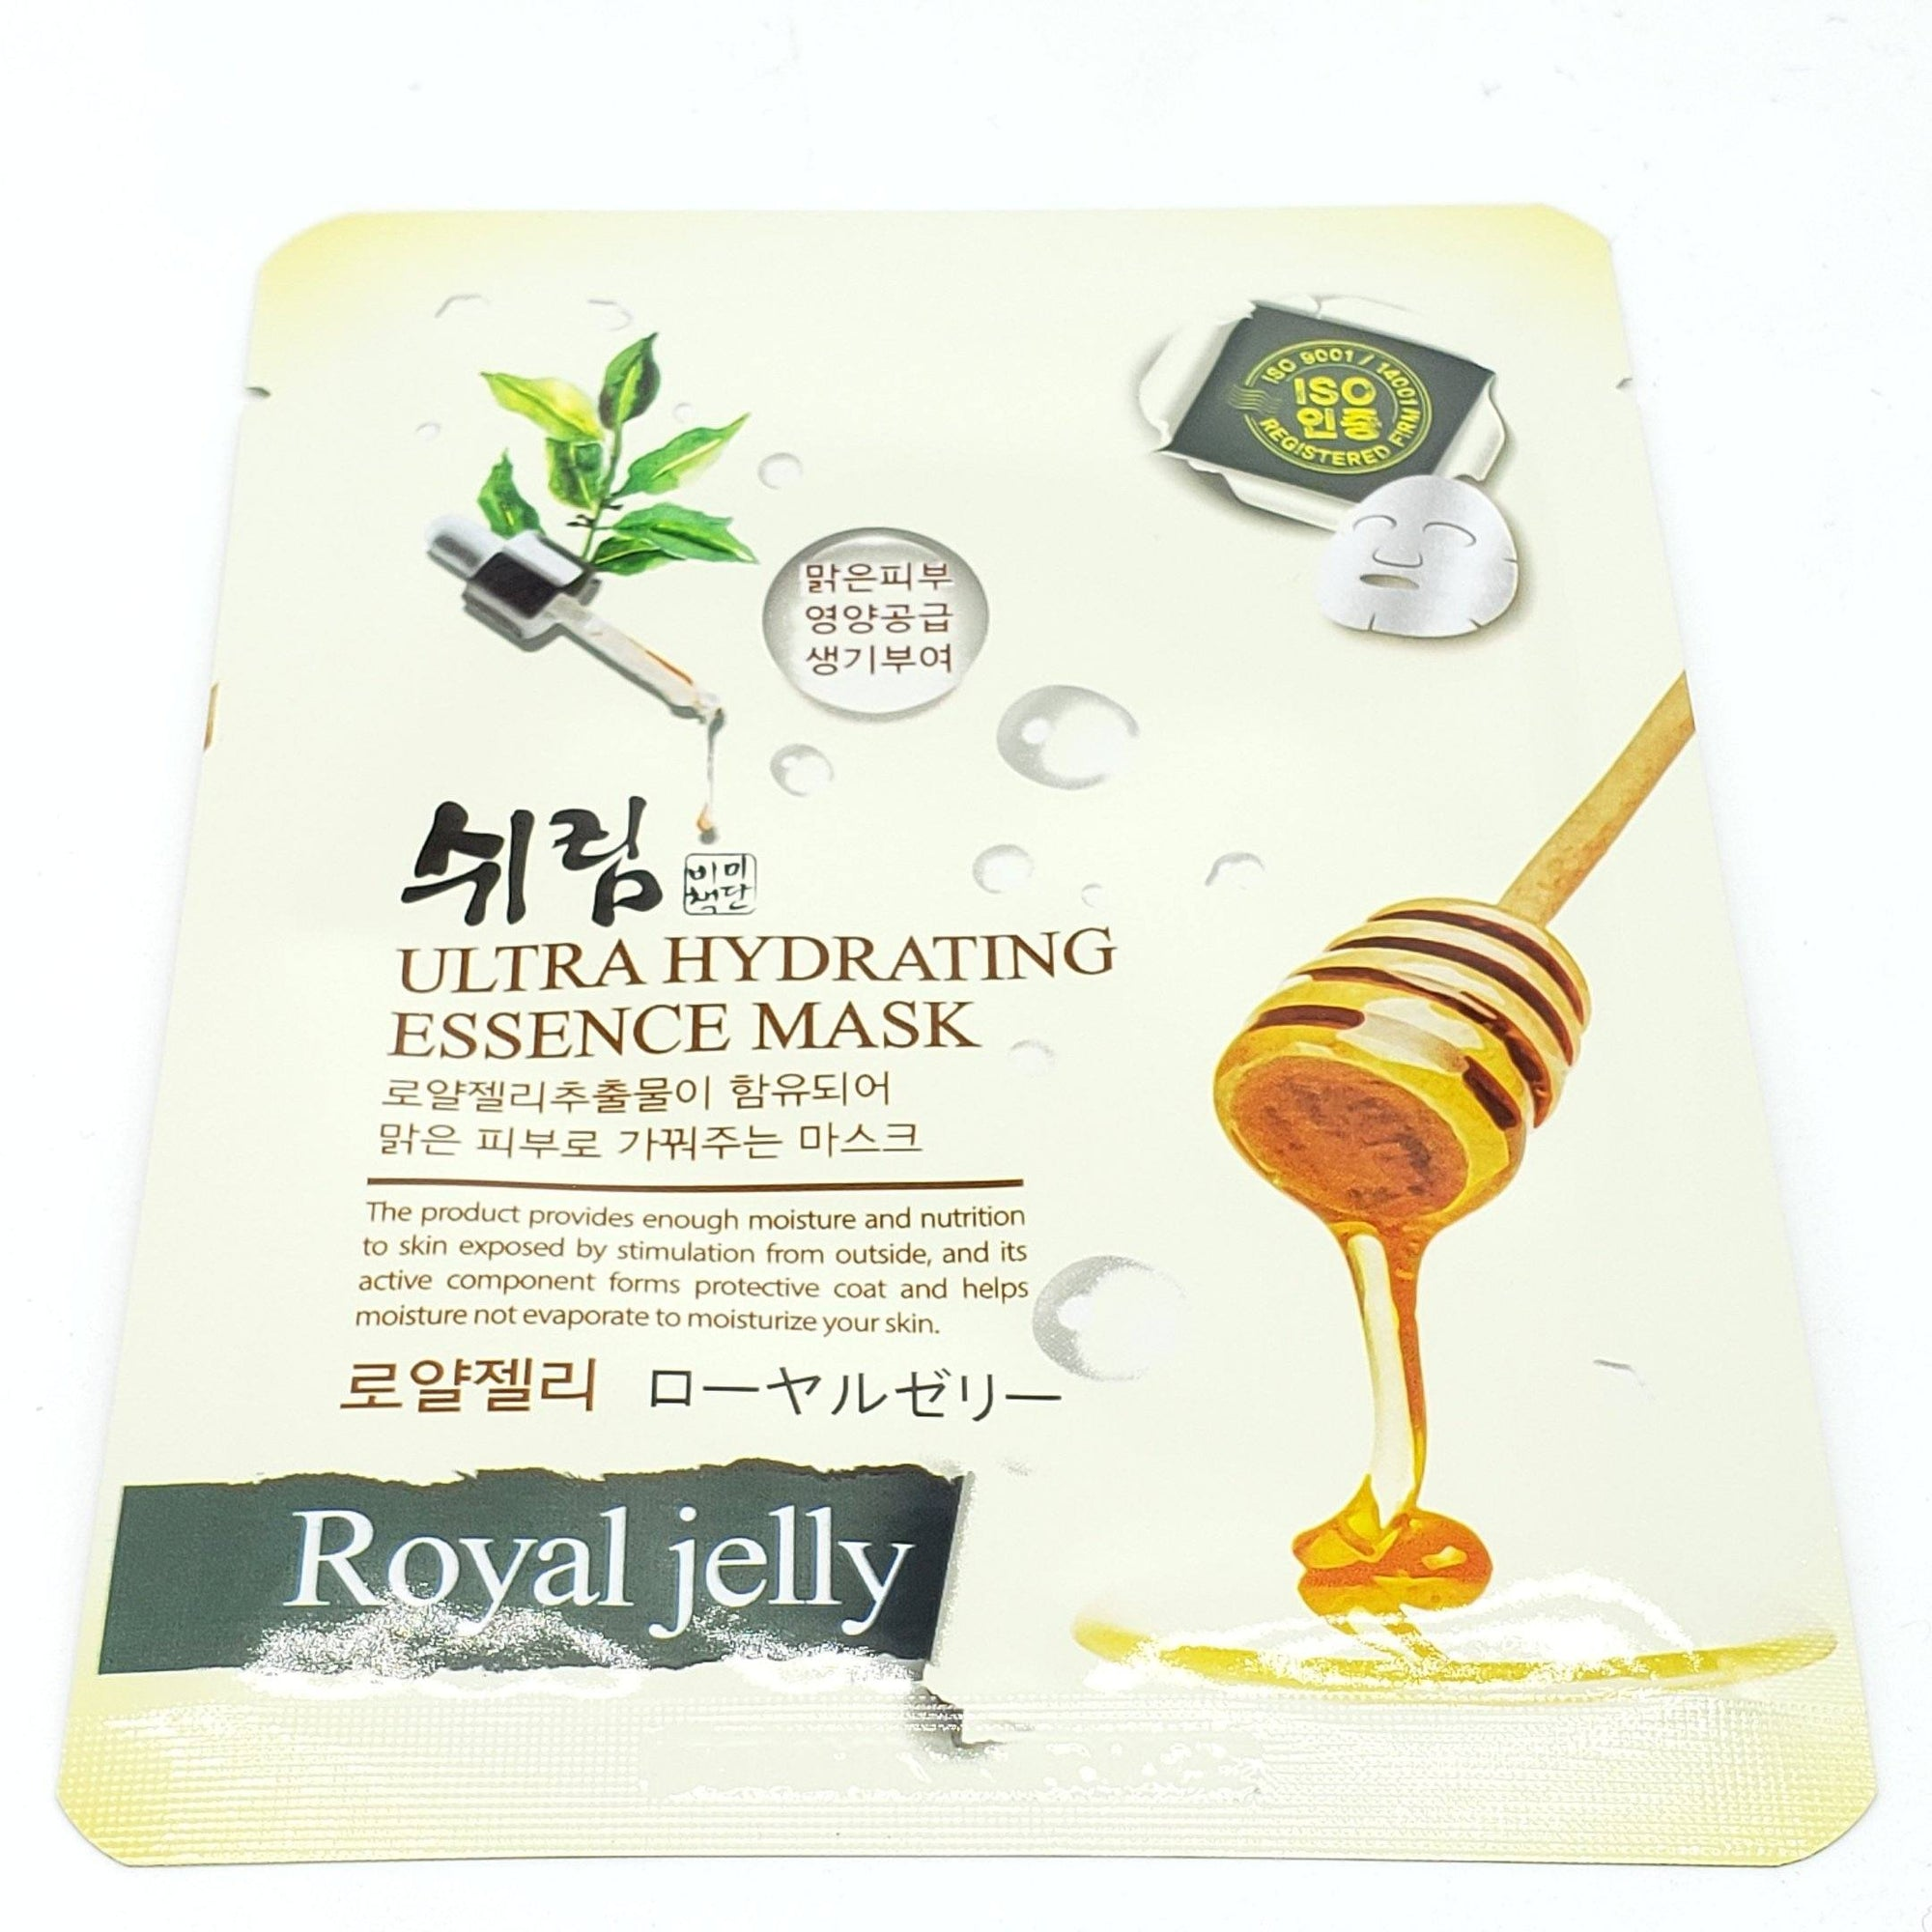 Shelim Facial Essence Mask Pack, Royal Jelly (10PC)